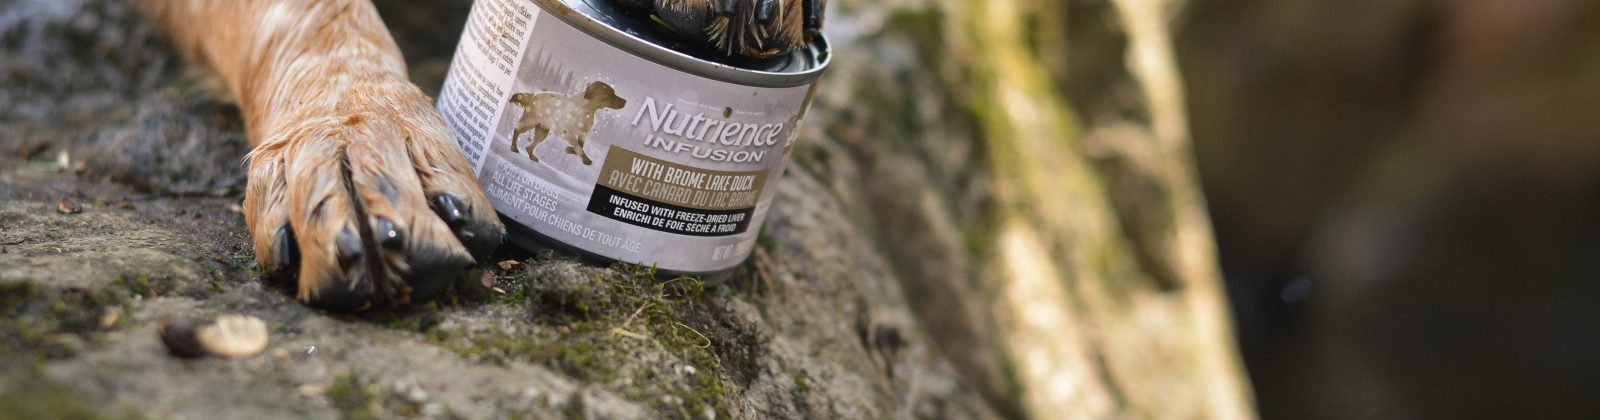 Nutrience pate Infusion chien dog